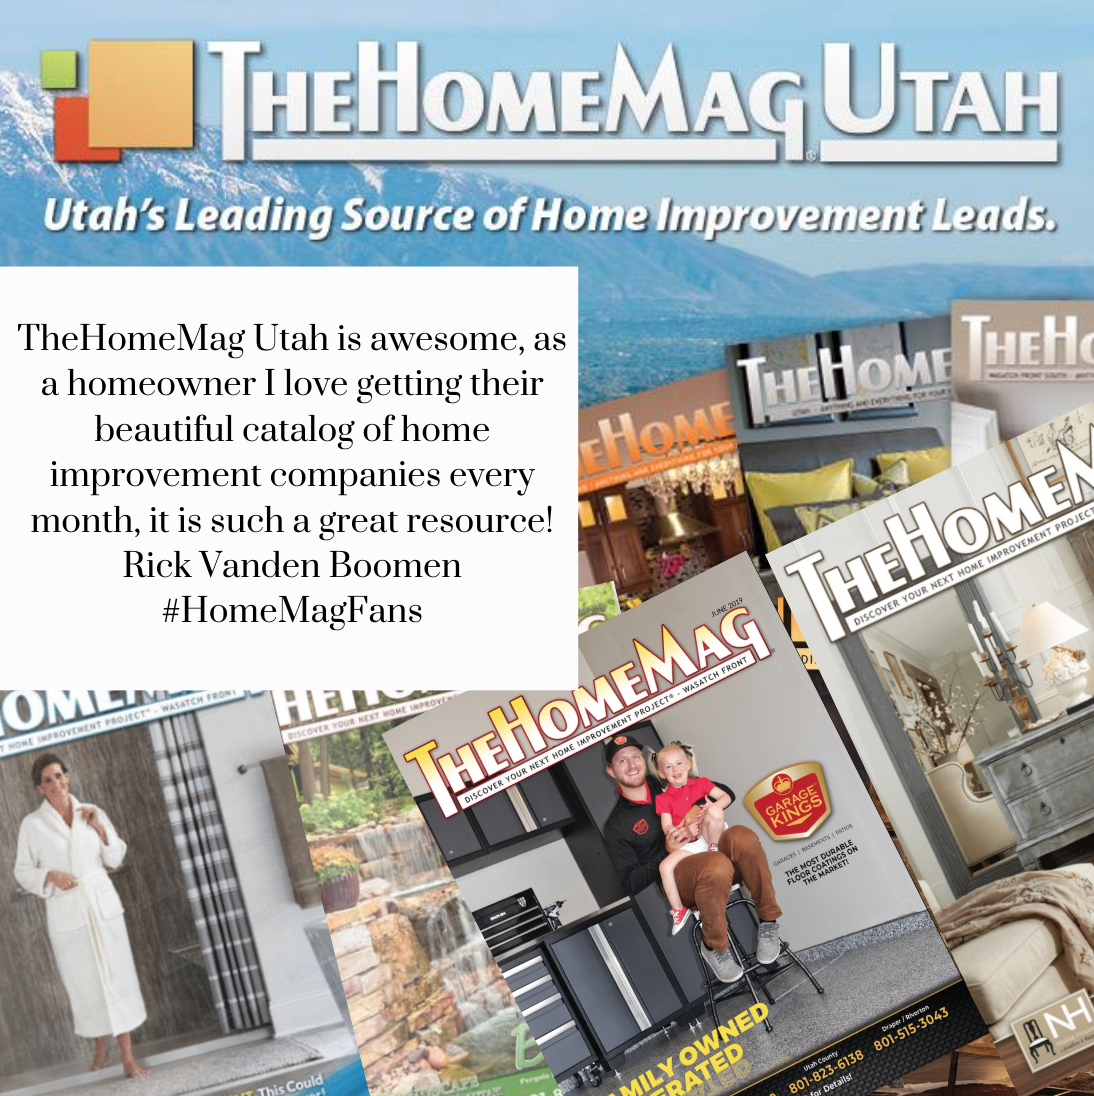 We love to see happy HomeMag customers ! Make sure you're subscribed to TheHomeMag Utah today! Don't miss out on all the amazing home owner information. #homeprofessionals #homemagazine  . . . . . #inspiration #designer #style #homestyle #instahome #interiorinspo #homesweethome #livingroom #handmade #interiorstyle #homeinspo #kitchen #interiordecorating #homemagazine #homeprofessionals #community #localbusinesses #supportlocalbusinesses